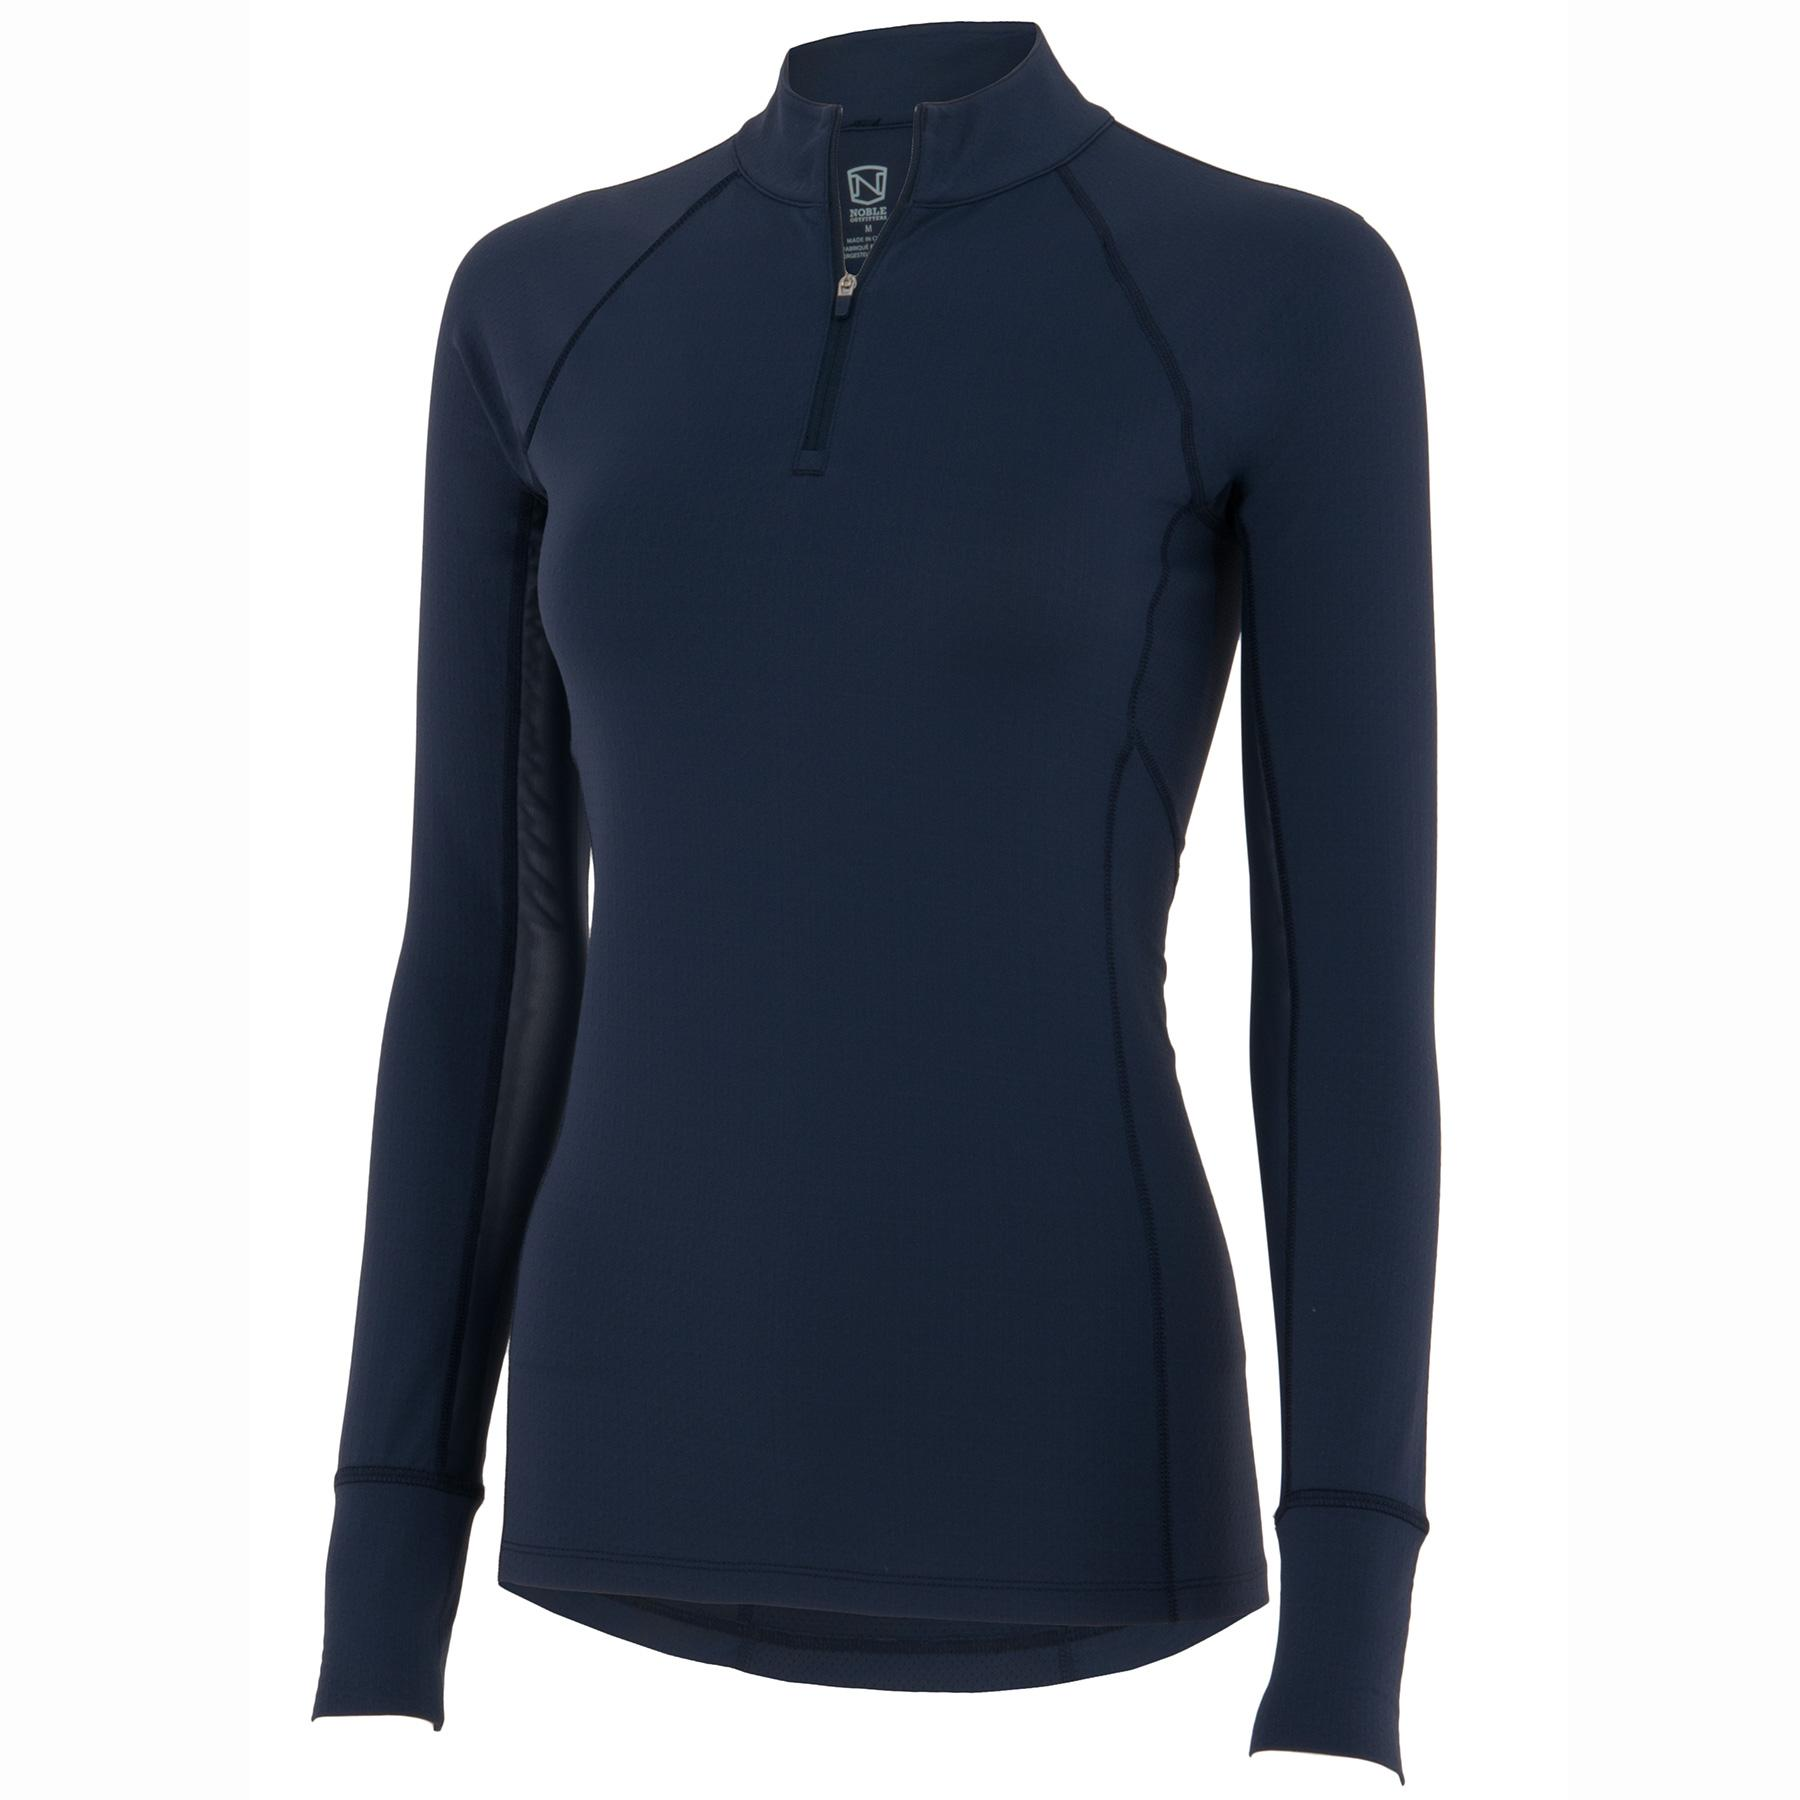 36947_ashley_performance_shirt_navy_a_zoom_2088177292